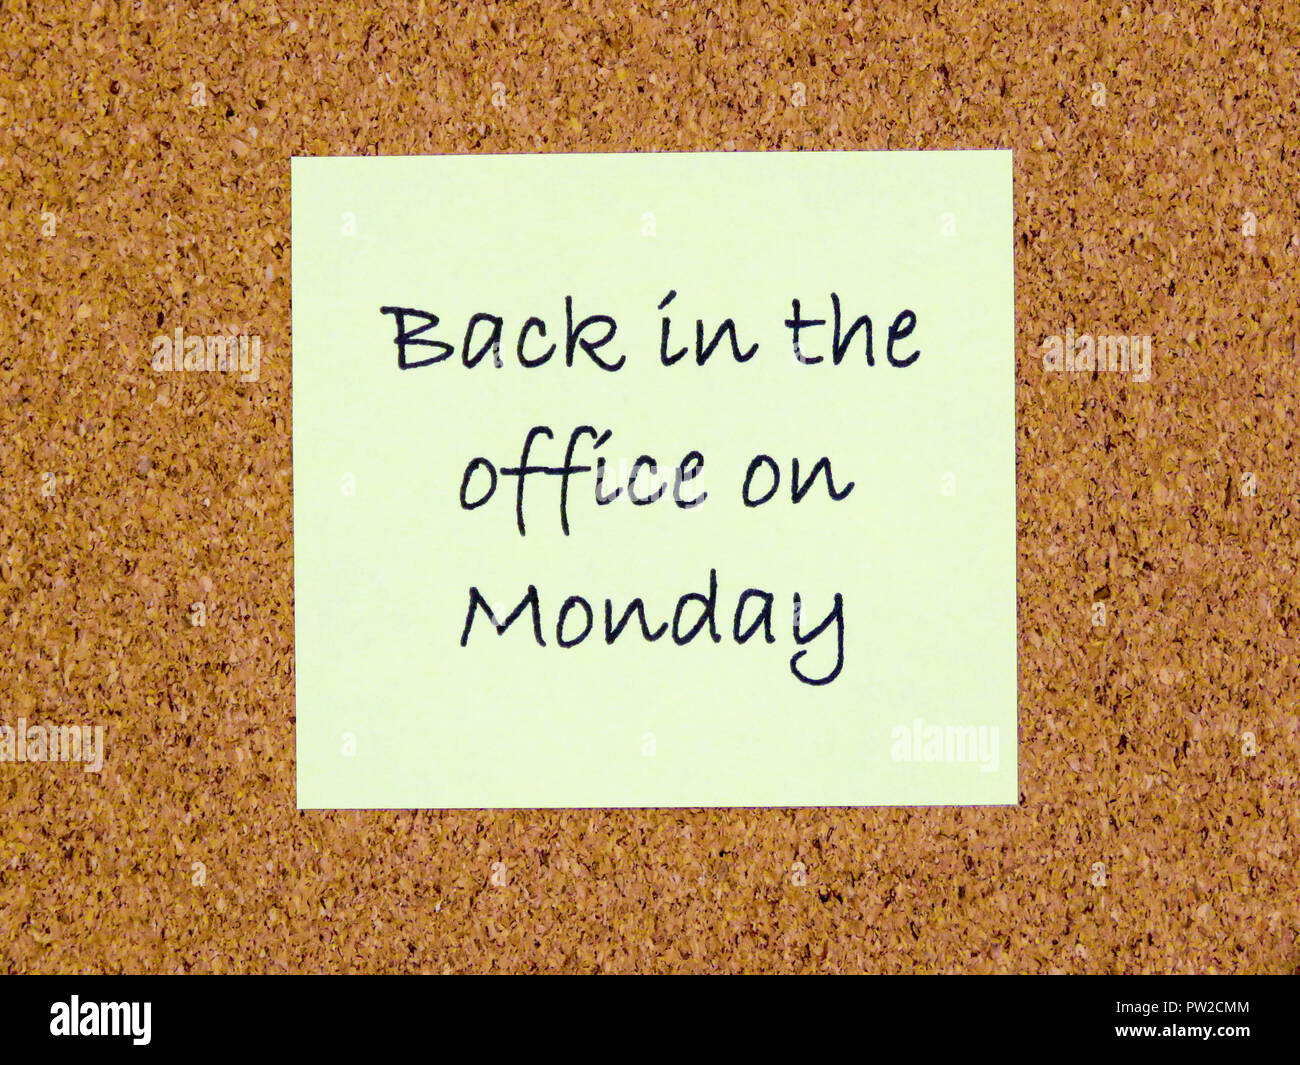 A yellow sticky note with back in the office on Monday written on it on a cork board background Stock Photo